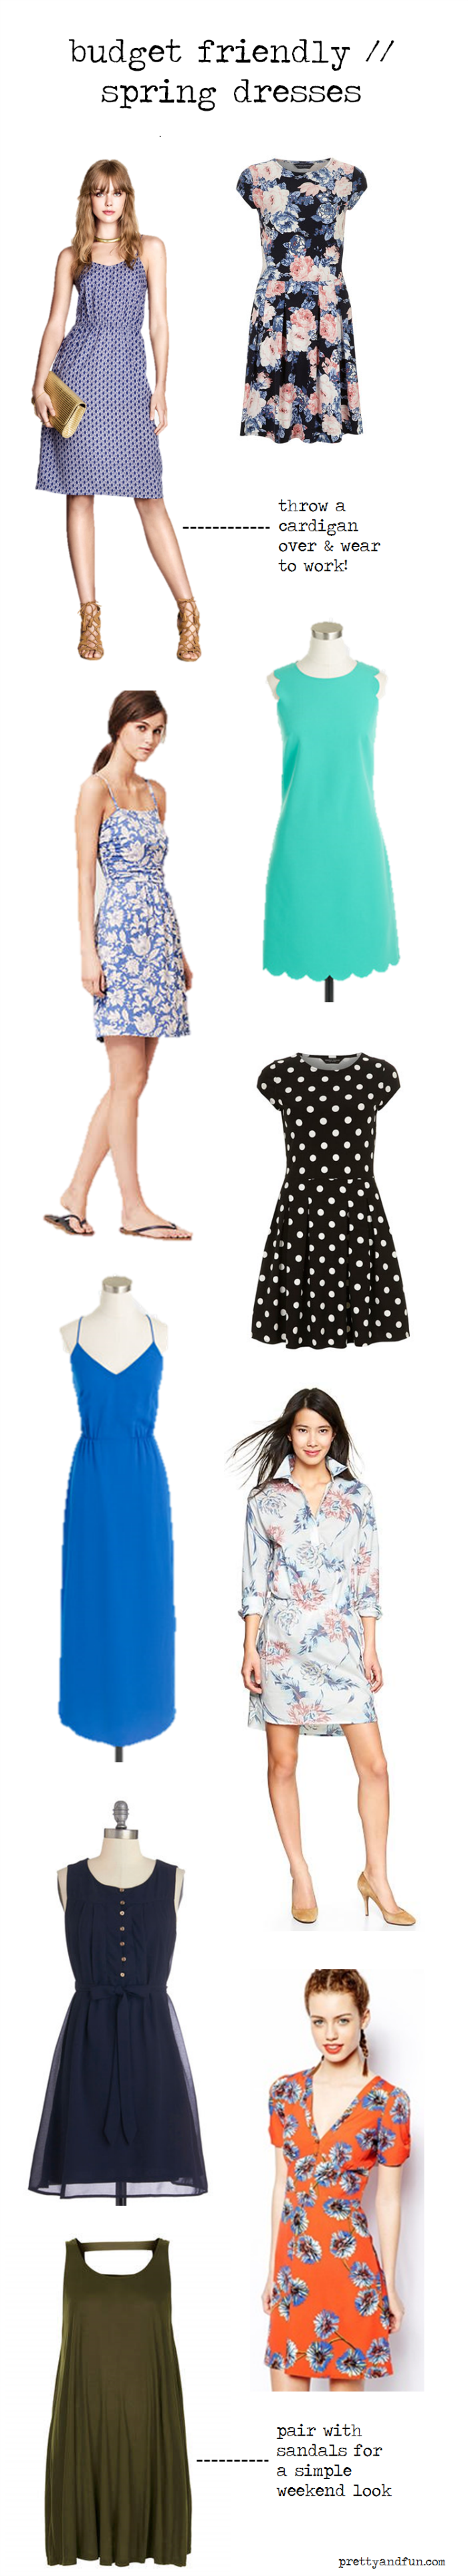 Budget-Friendly-Spring-Dresses